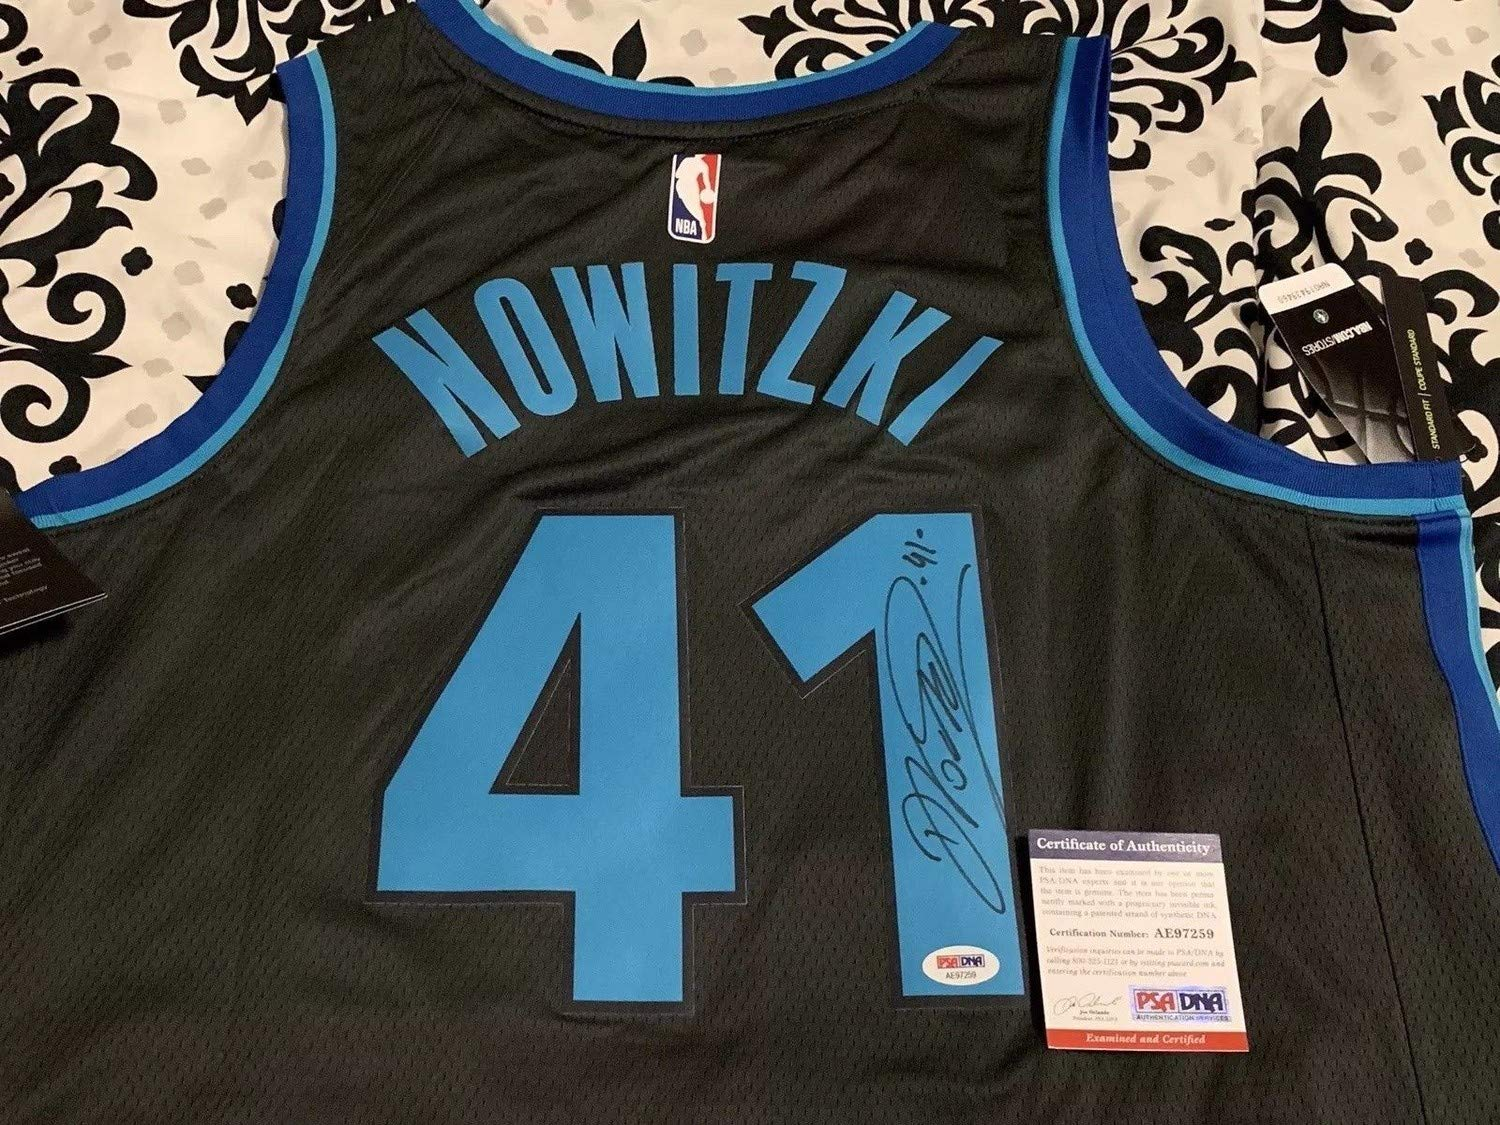 9874f77bcb0 Dirk Nowitzki Autographed Signed City Edition Dallas Mavericks Nba Swingman  Jersey Memorabilia PSA DNA at Amazon s Sports Collectibles Store